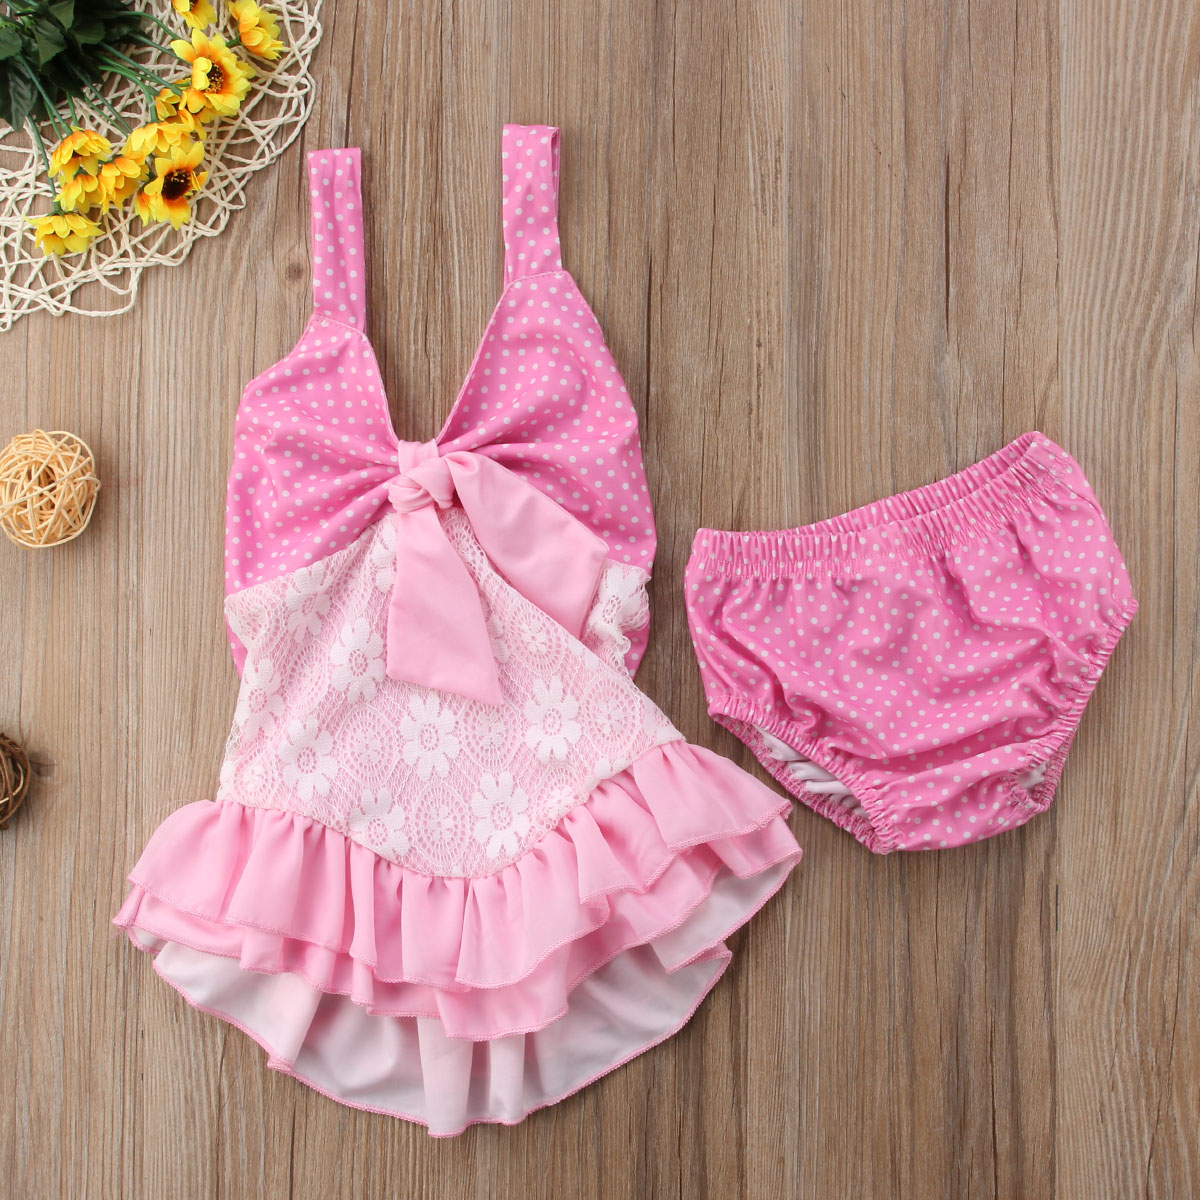 Infant Toddle Baby Girls Lace Tutu Ruch Bikini Swimsuit Swimwear Beachwear Bathing Suit Summer Clothes Outfits Girl 0-18M